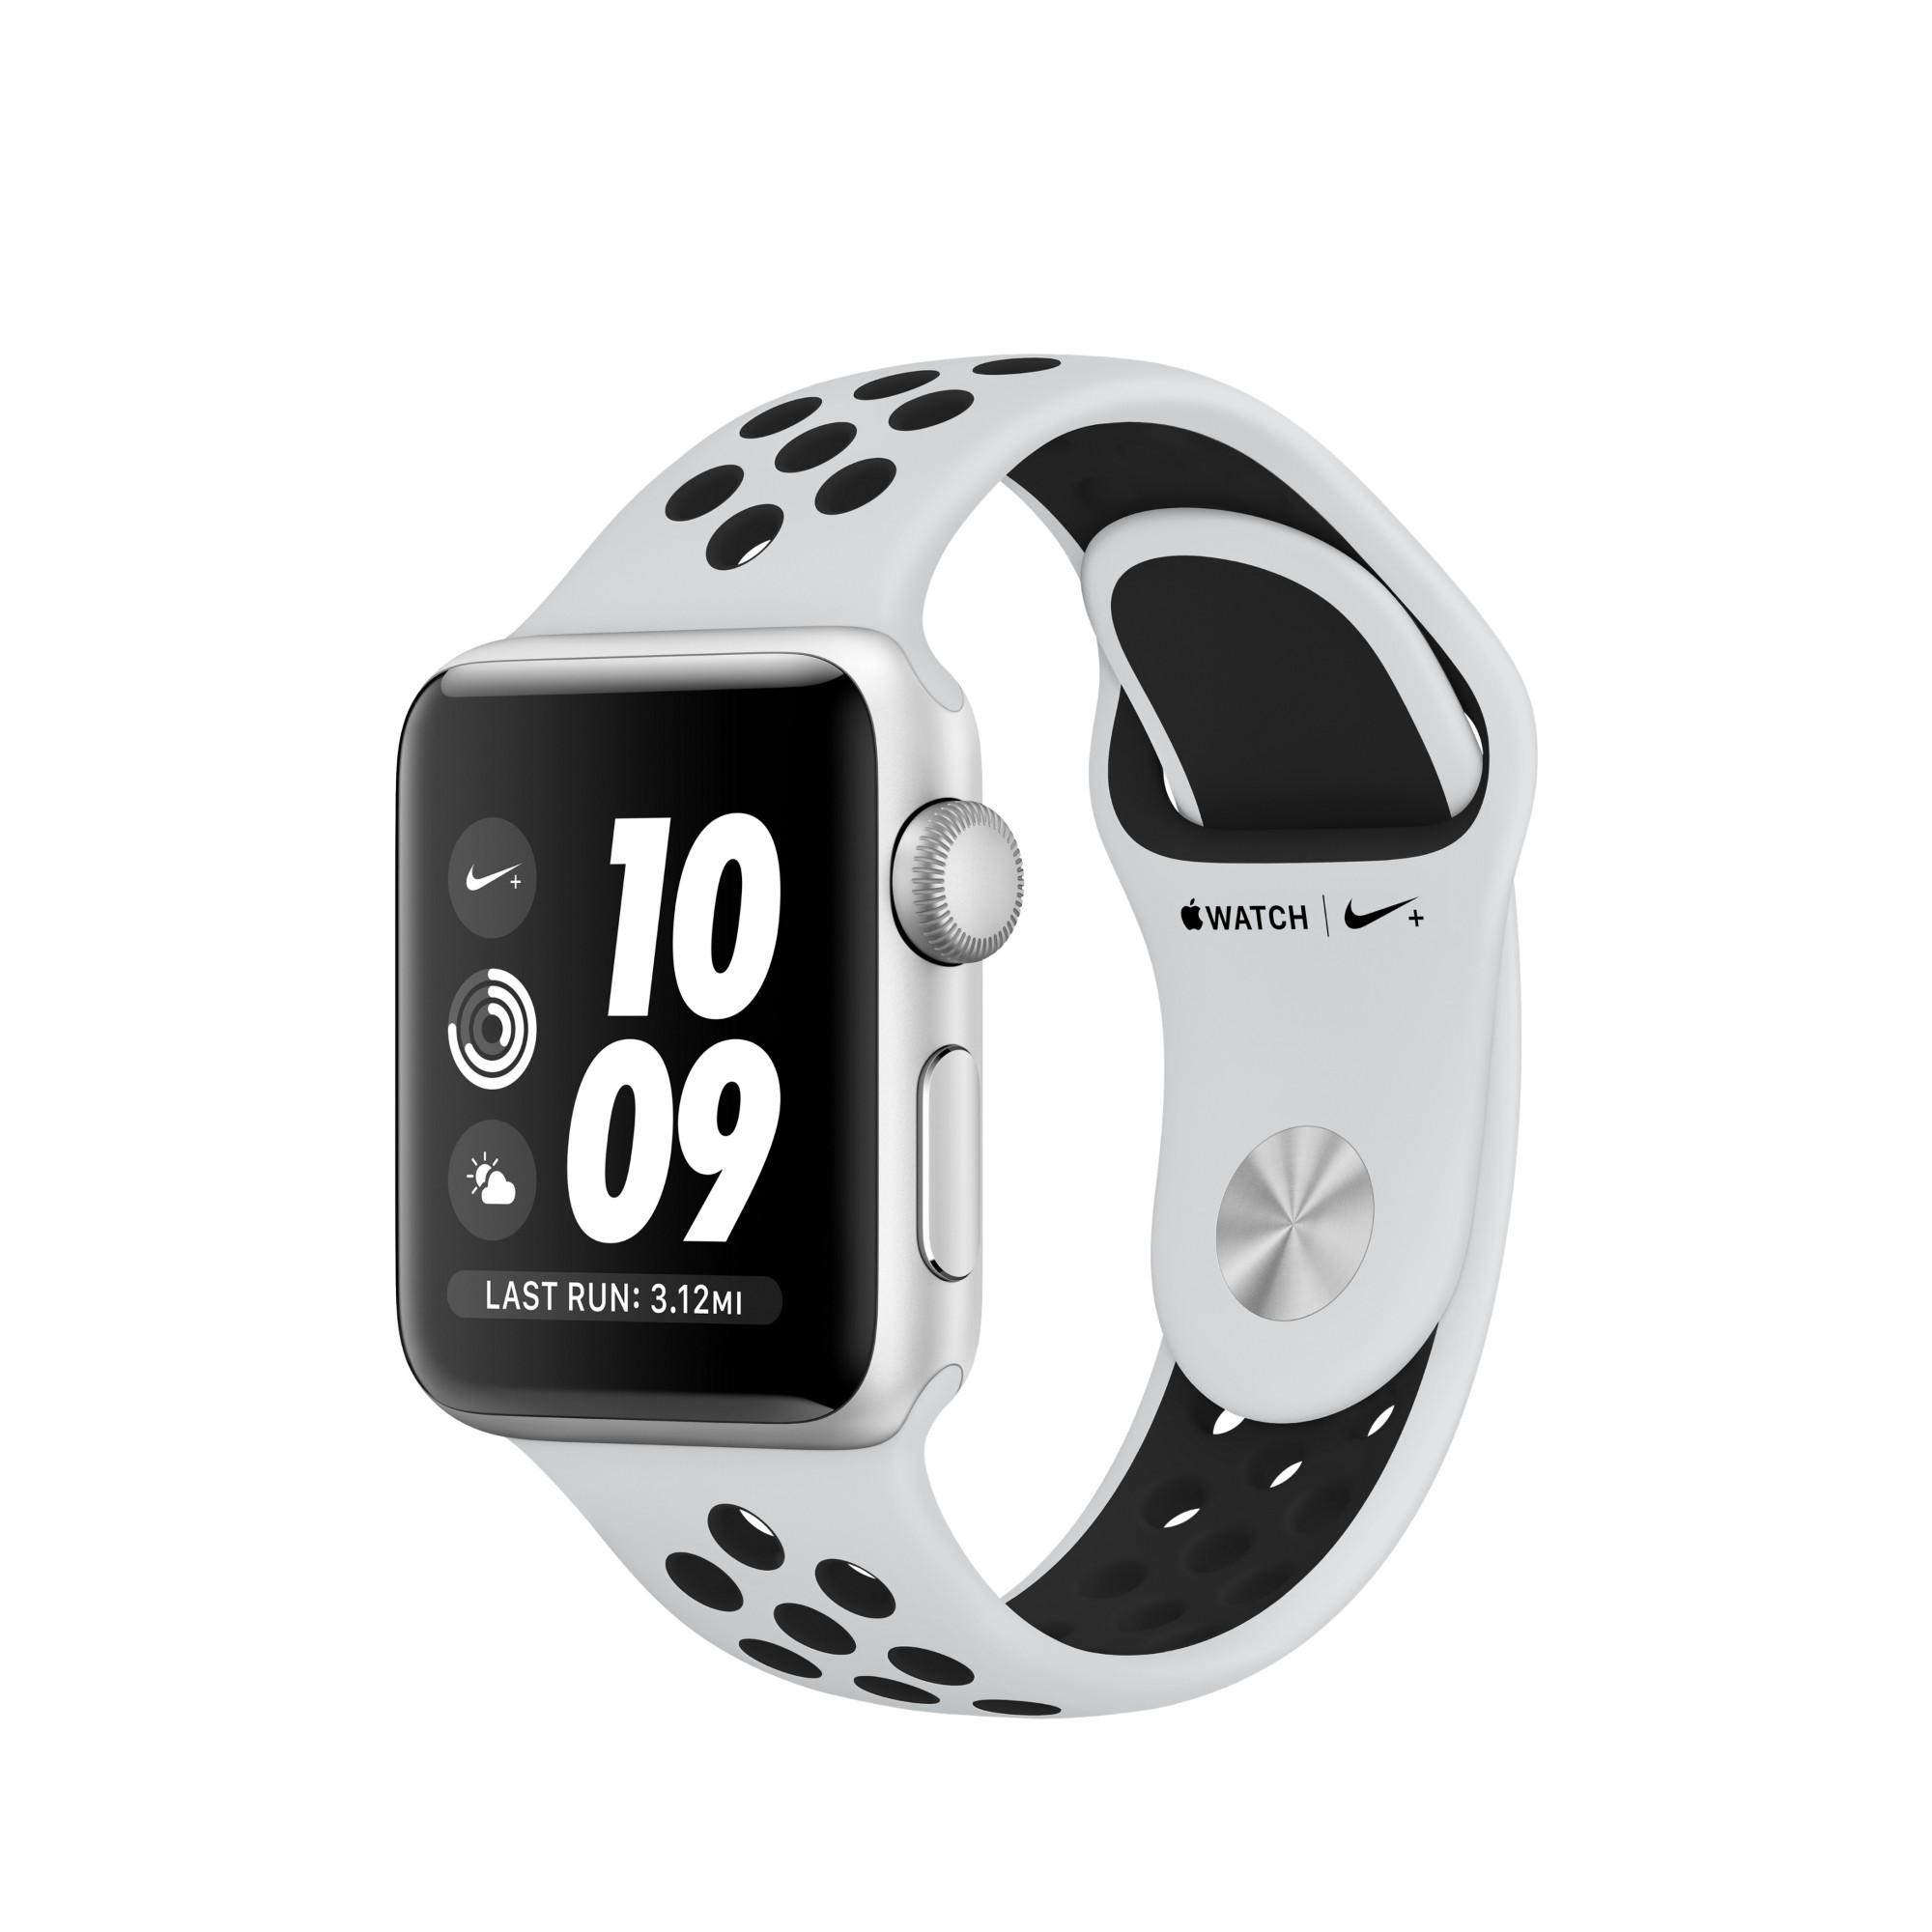 APPLE WATCH NIKE+ OLED GPS (SATELLITE) SILVER SMARTWATCH